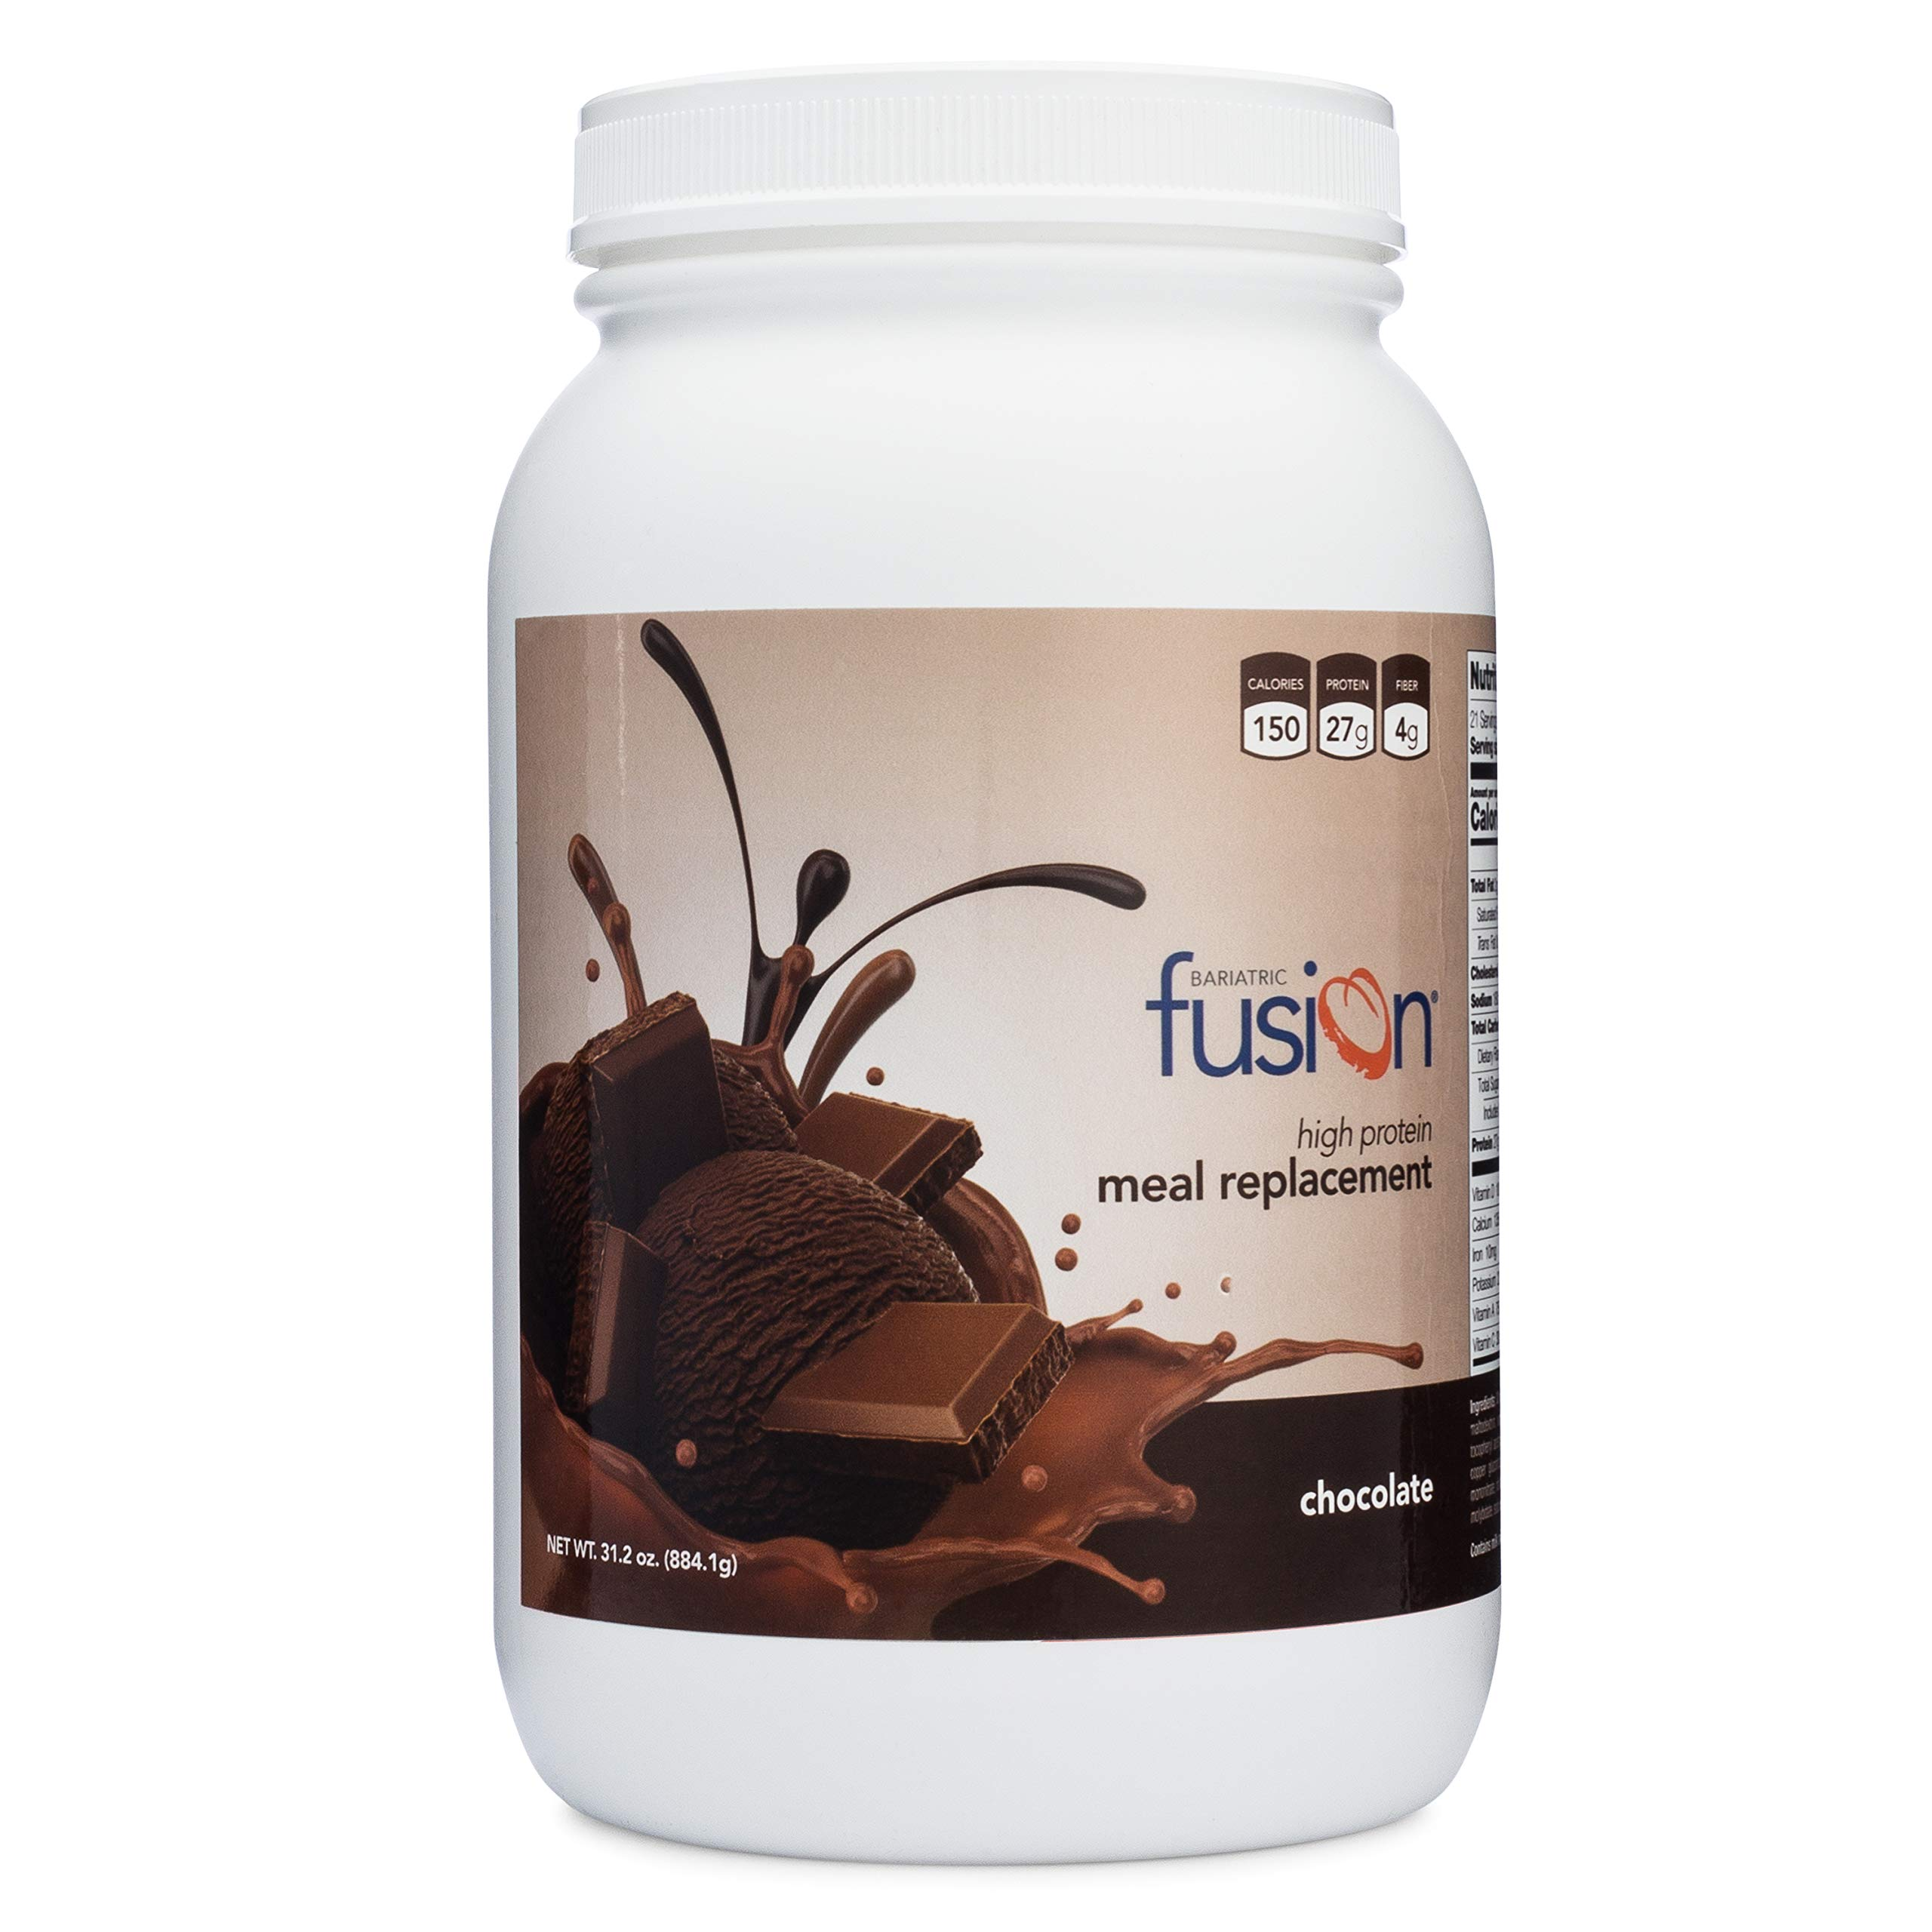 Bariatric Fusion Chocolate Meal Replacement Protein 21 Serving Tub for Bariatric Surgery Patients Including Gastric Bypass & Sleeve Gastrectomy by Bariatric Fusion